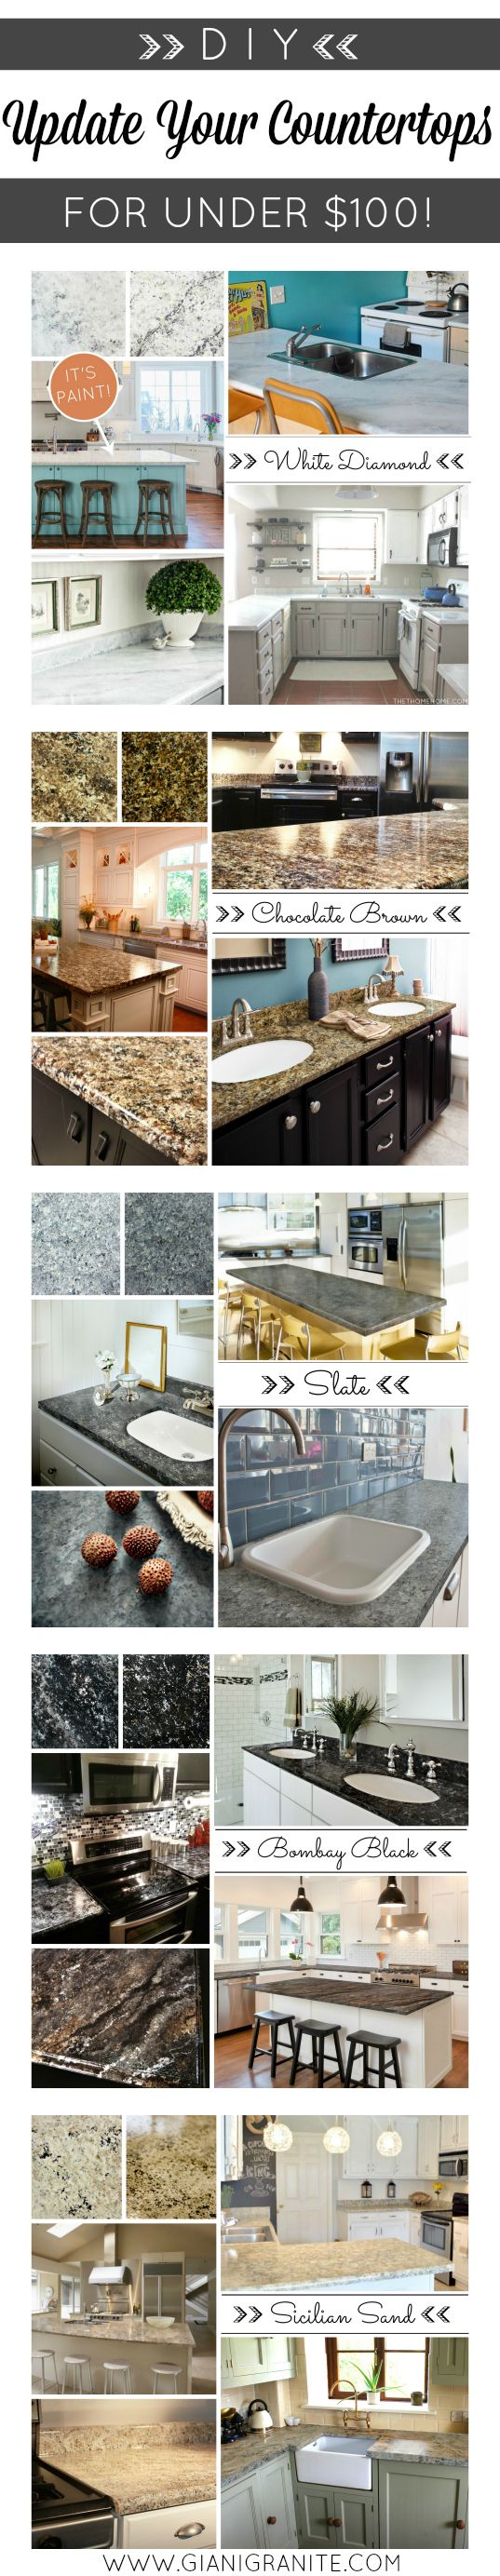 Beautiful Painted Countertops Diy Countertop Paint Kits From Giani Granite Get The Look Of Natural Stone For Under